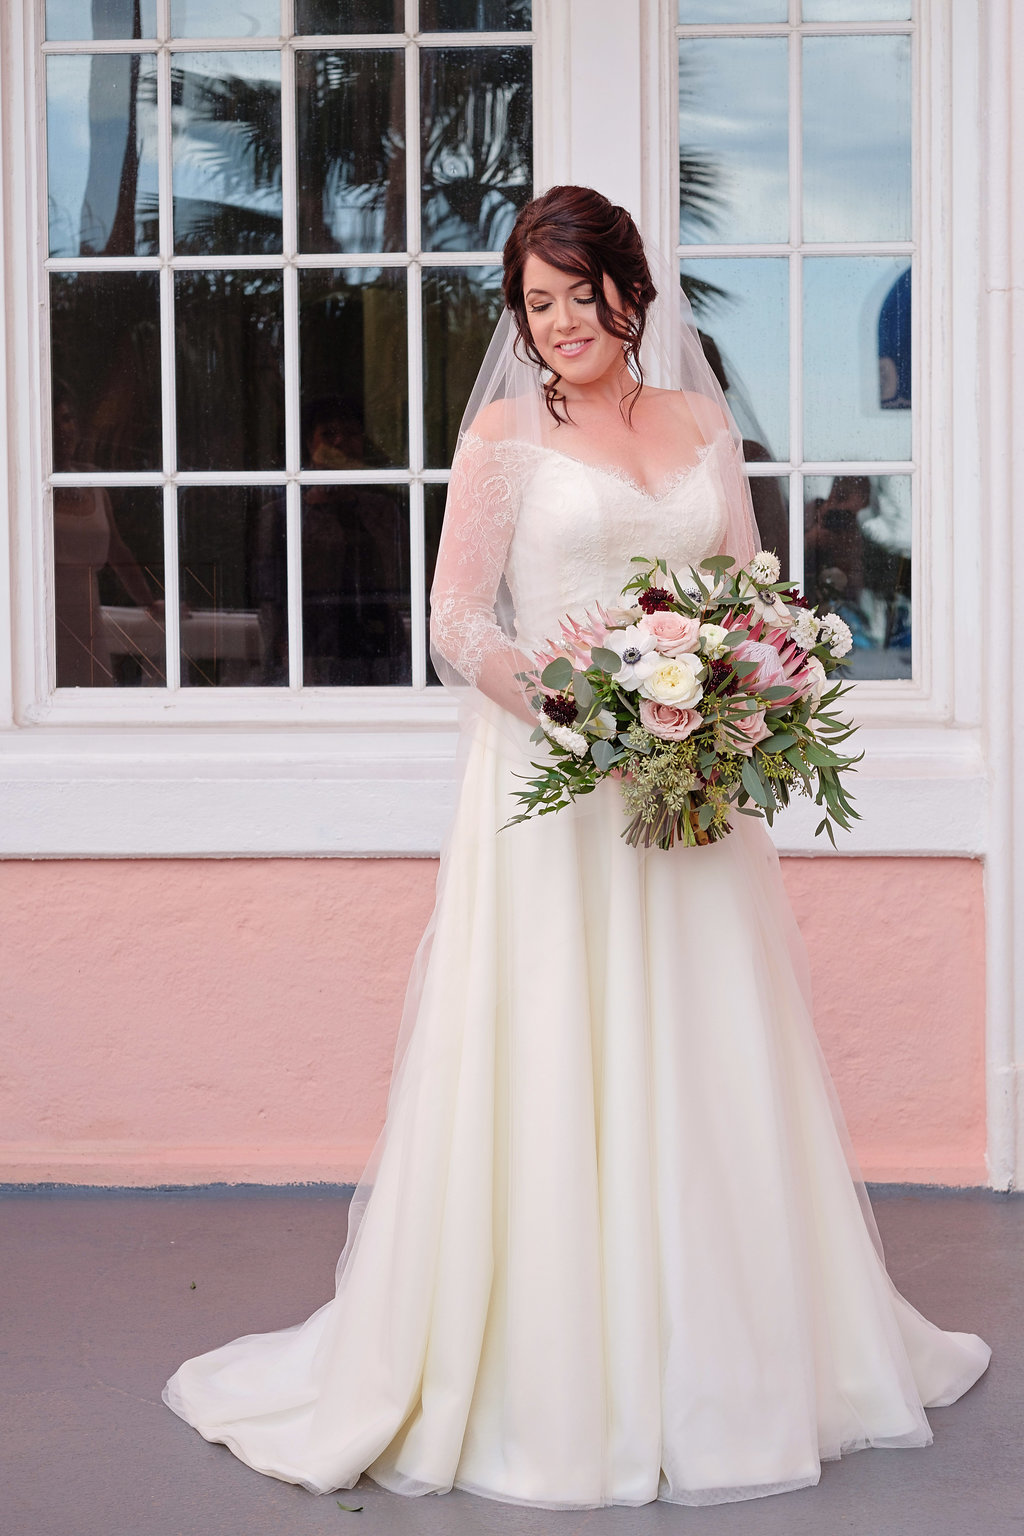 Outdoor Bridal Portrait in Lace Sleeve Wedding Dress with Blush Pink, White, and Burgundy Bouquet with Greenery | Tampa Bay Wedding Hair and Makeup Femme Akoi Beauty Studio | St Pete Photographer Marc Edwards Photographs